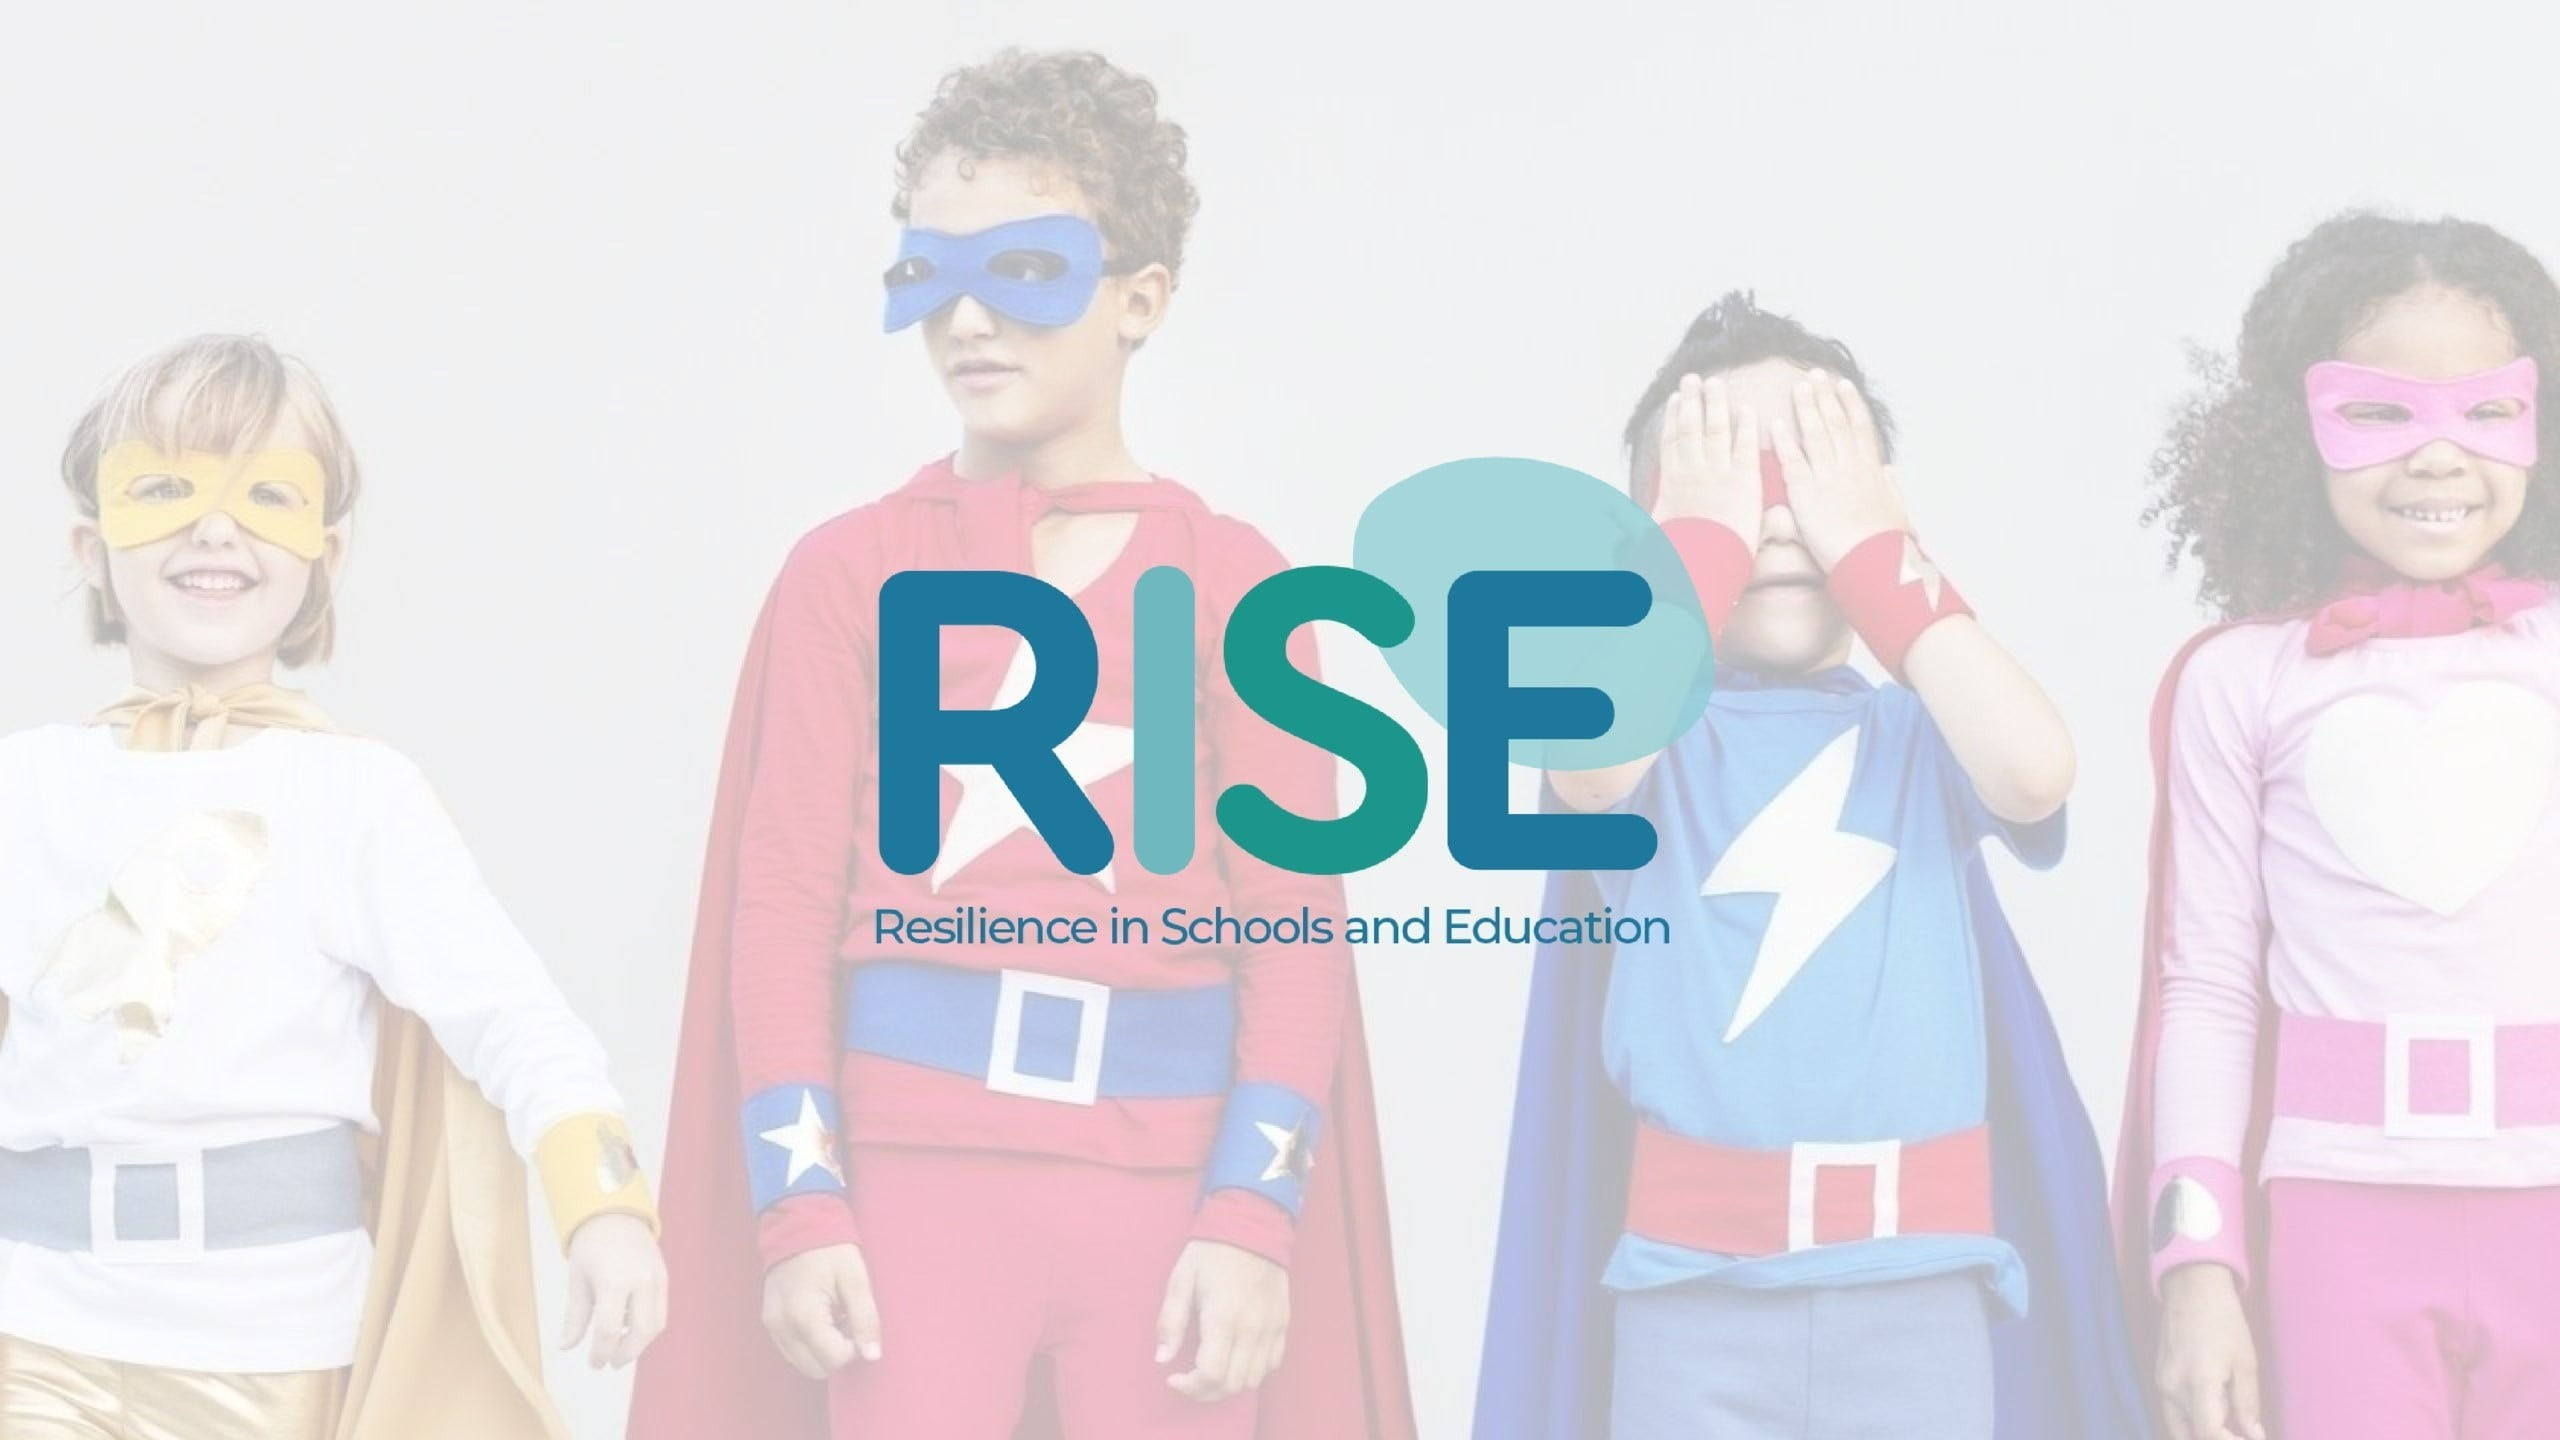 RISE: Resilience in Schools and Education main image and logo